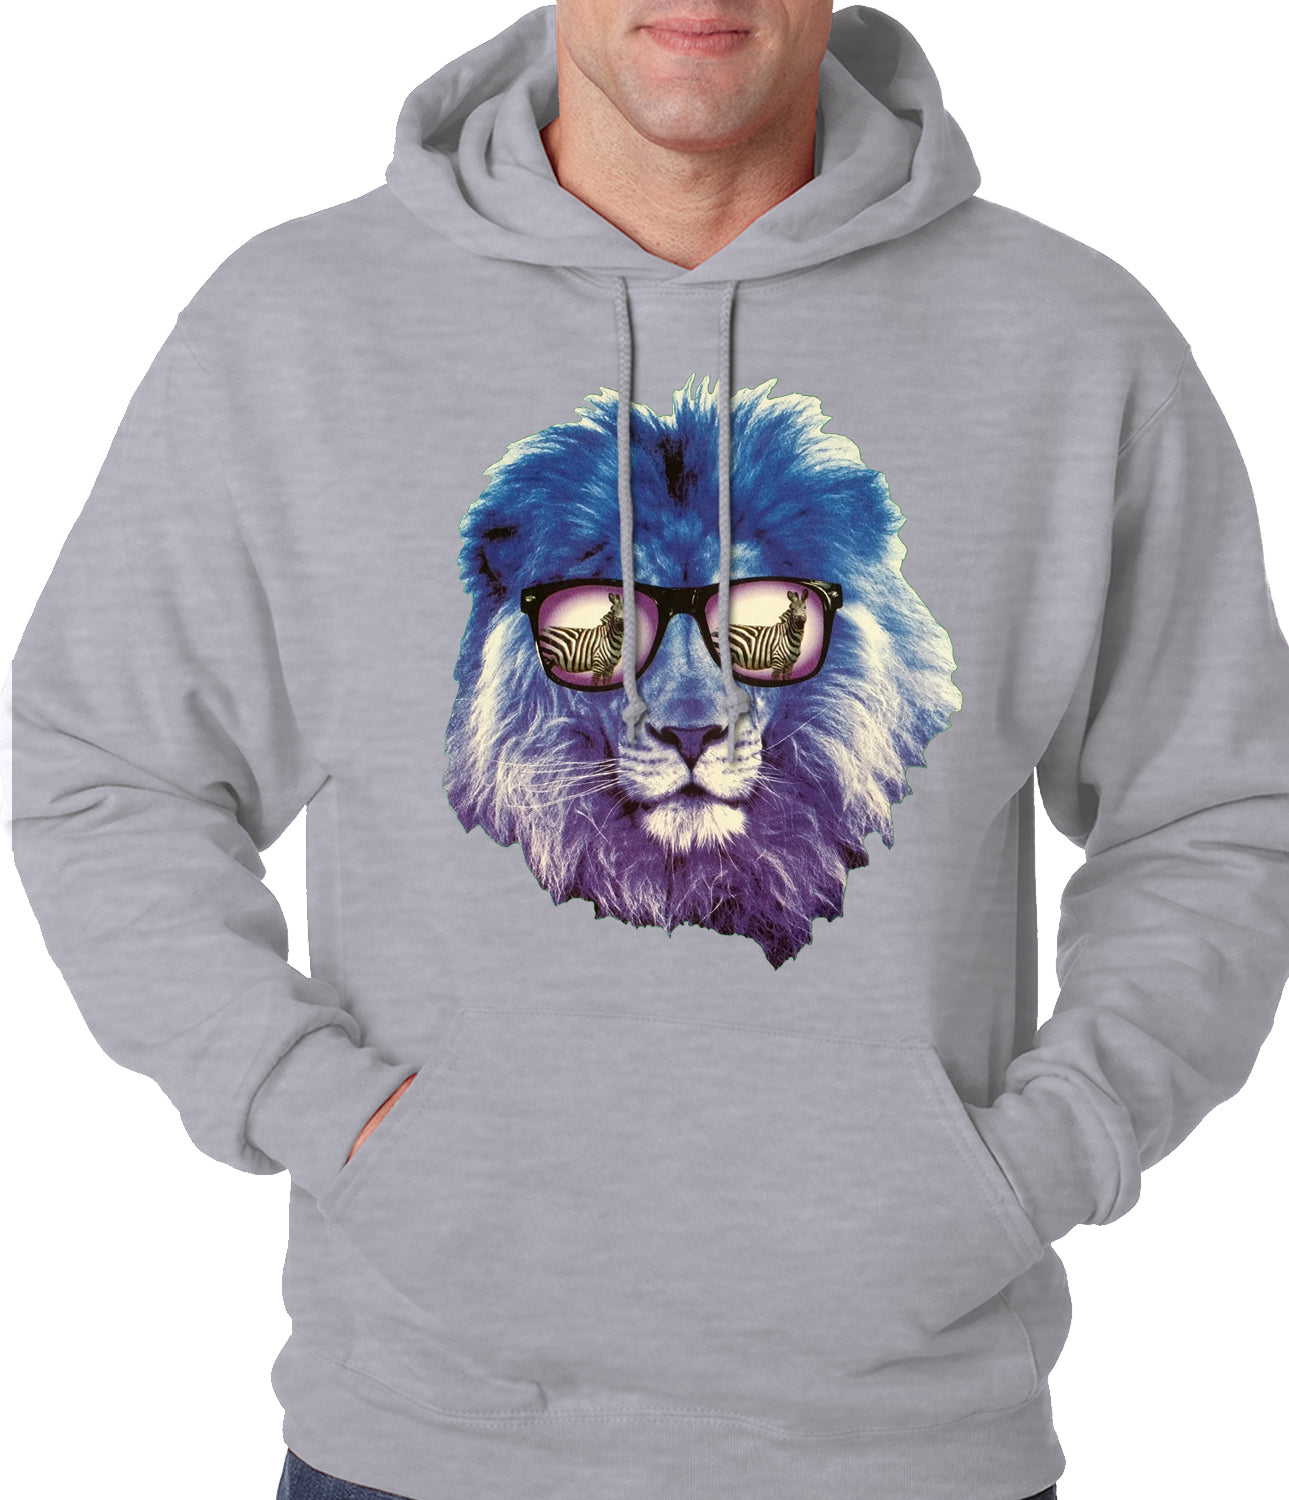 Lion Wearing Sunglasses Looking at a Zebra Adult Hoodie